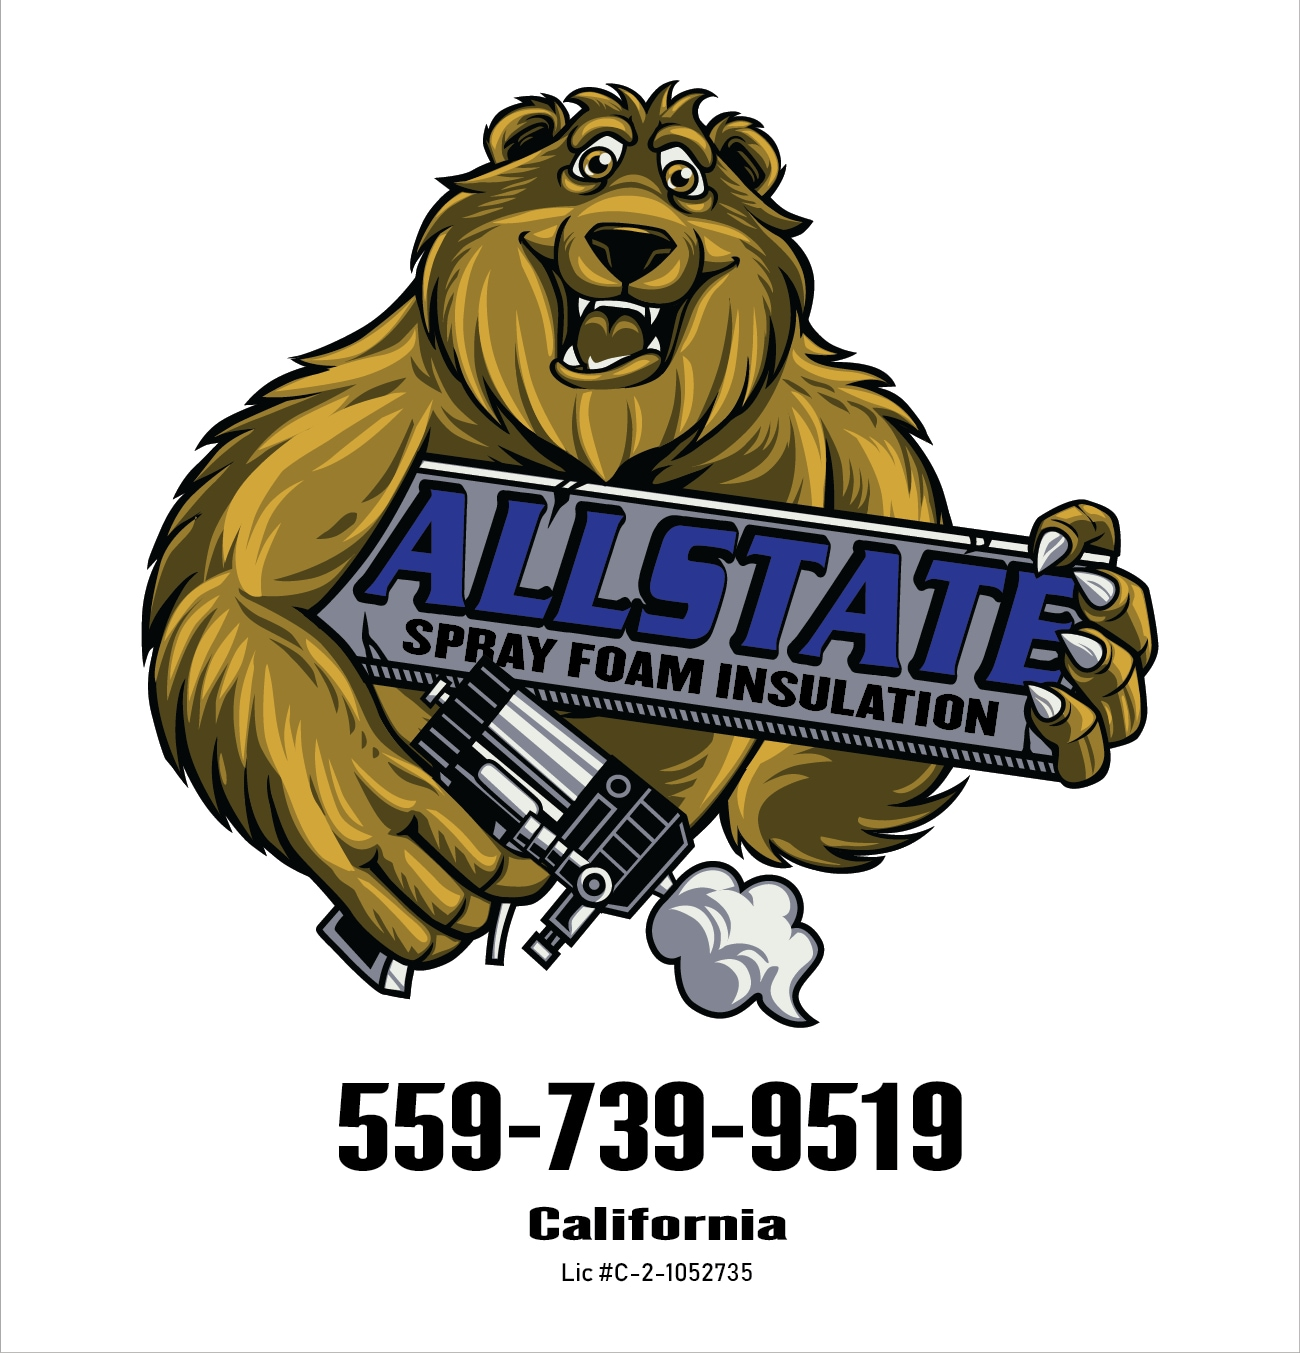 Allstate Spray Foam Insulaiton